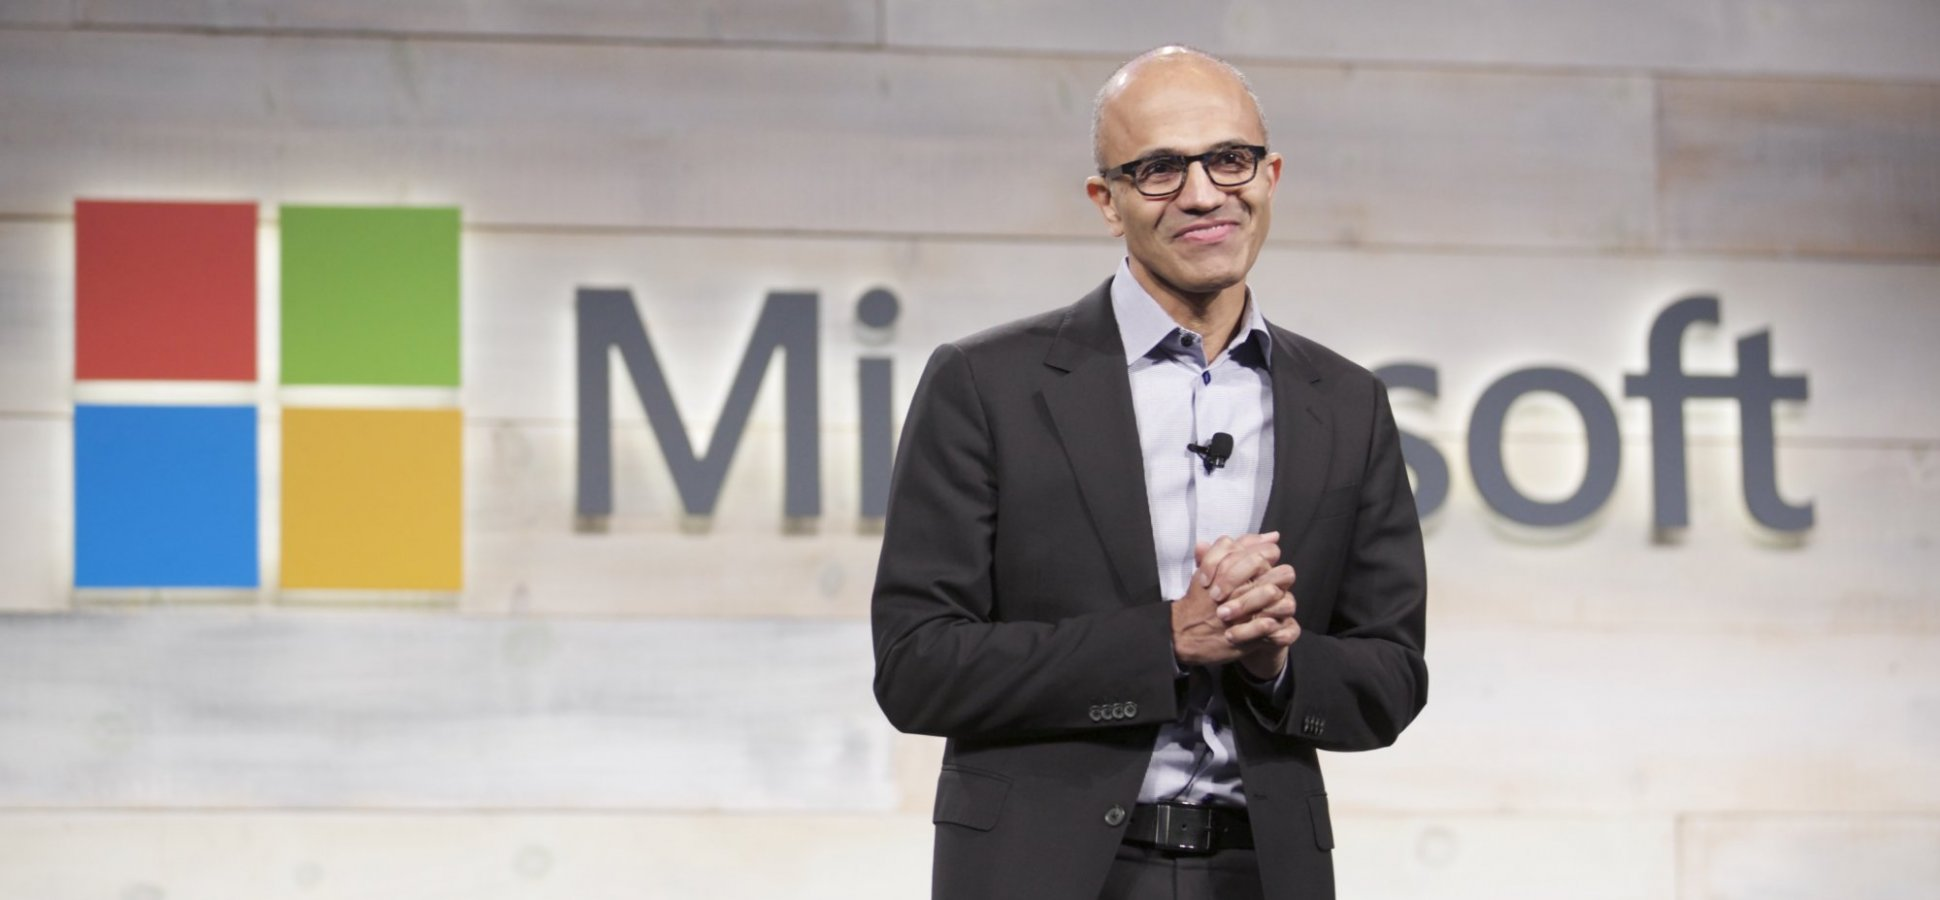 Microsoft Spends $500 Million to Help Build Affordable Housing